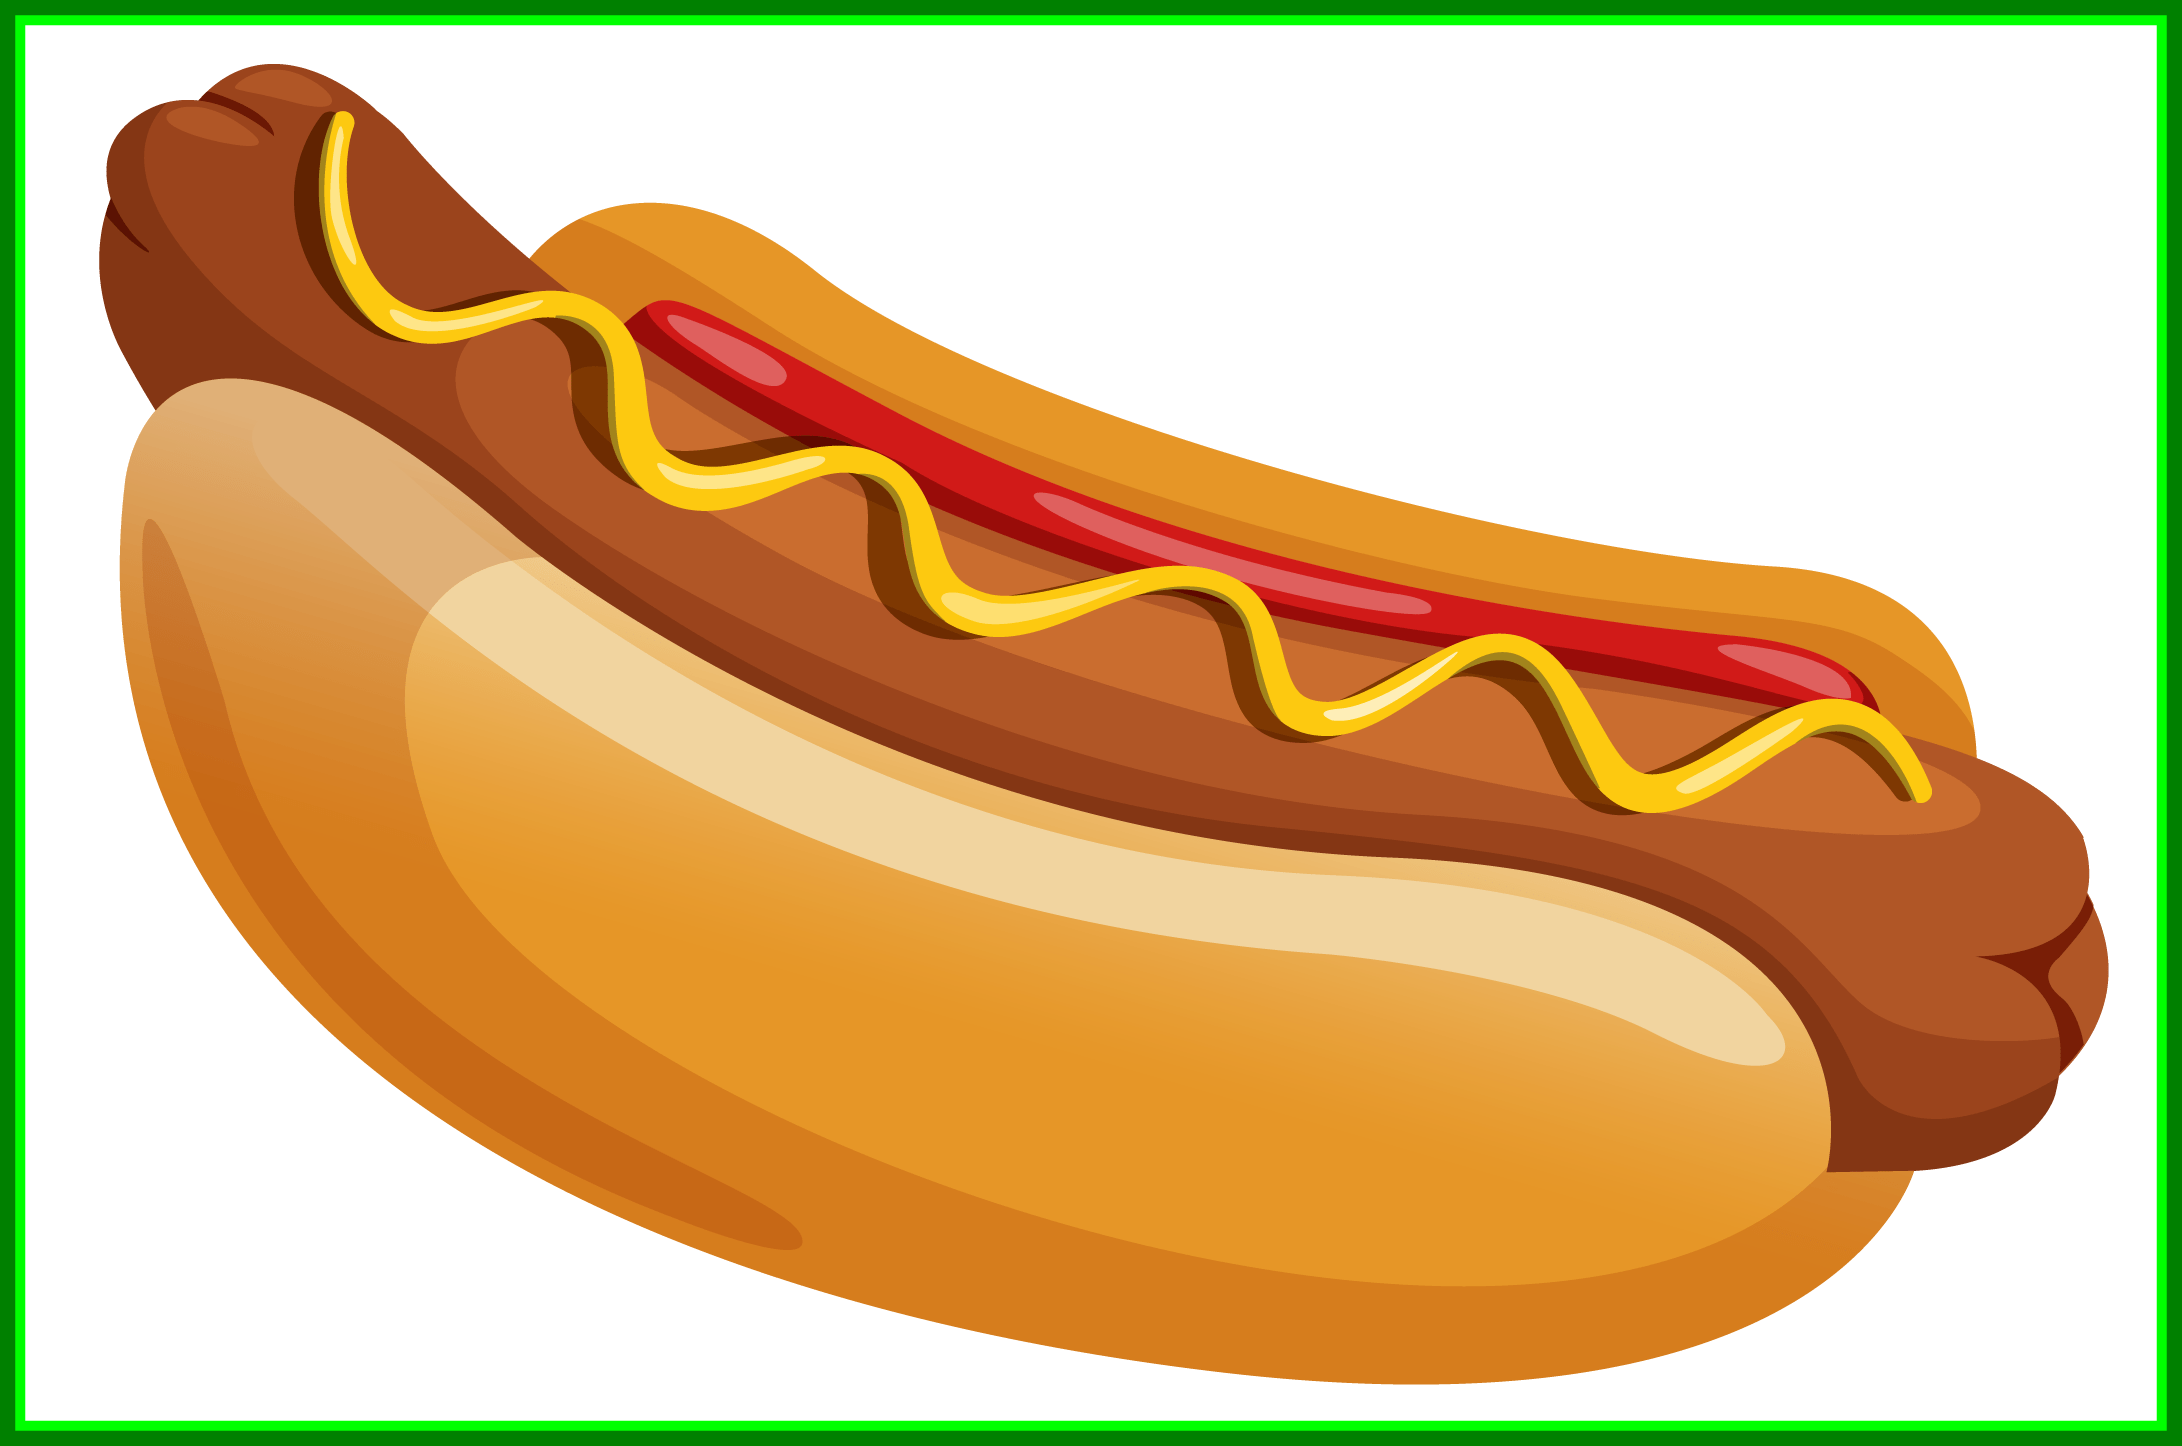 svg black and white download Clipart free download on. Hotdog transparent draw